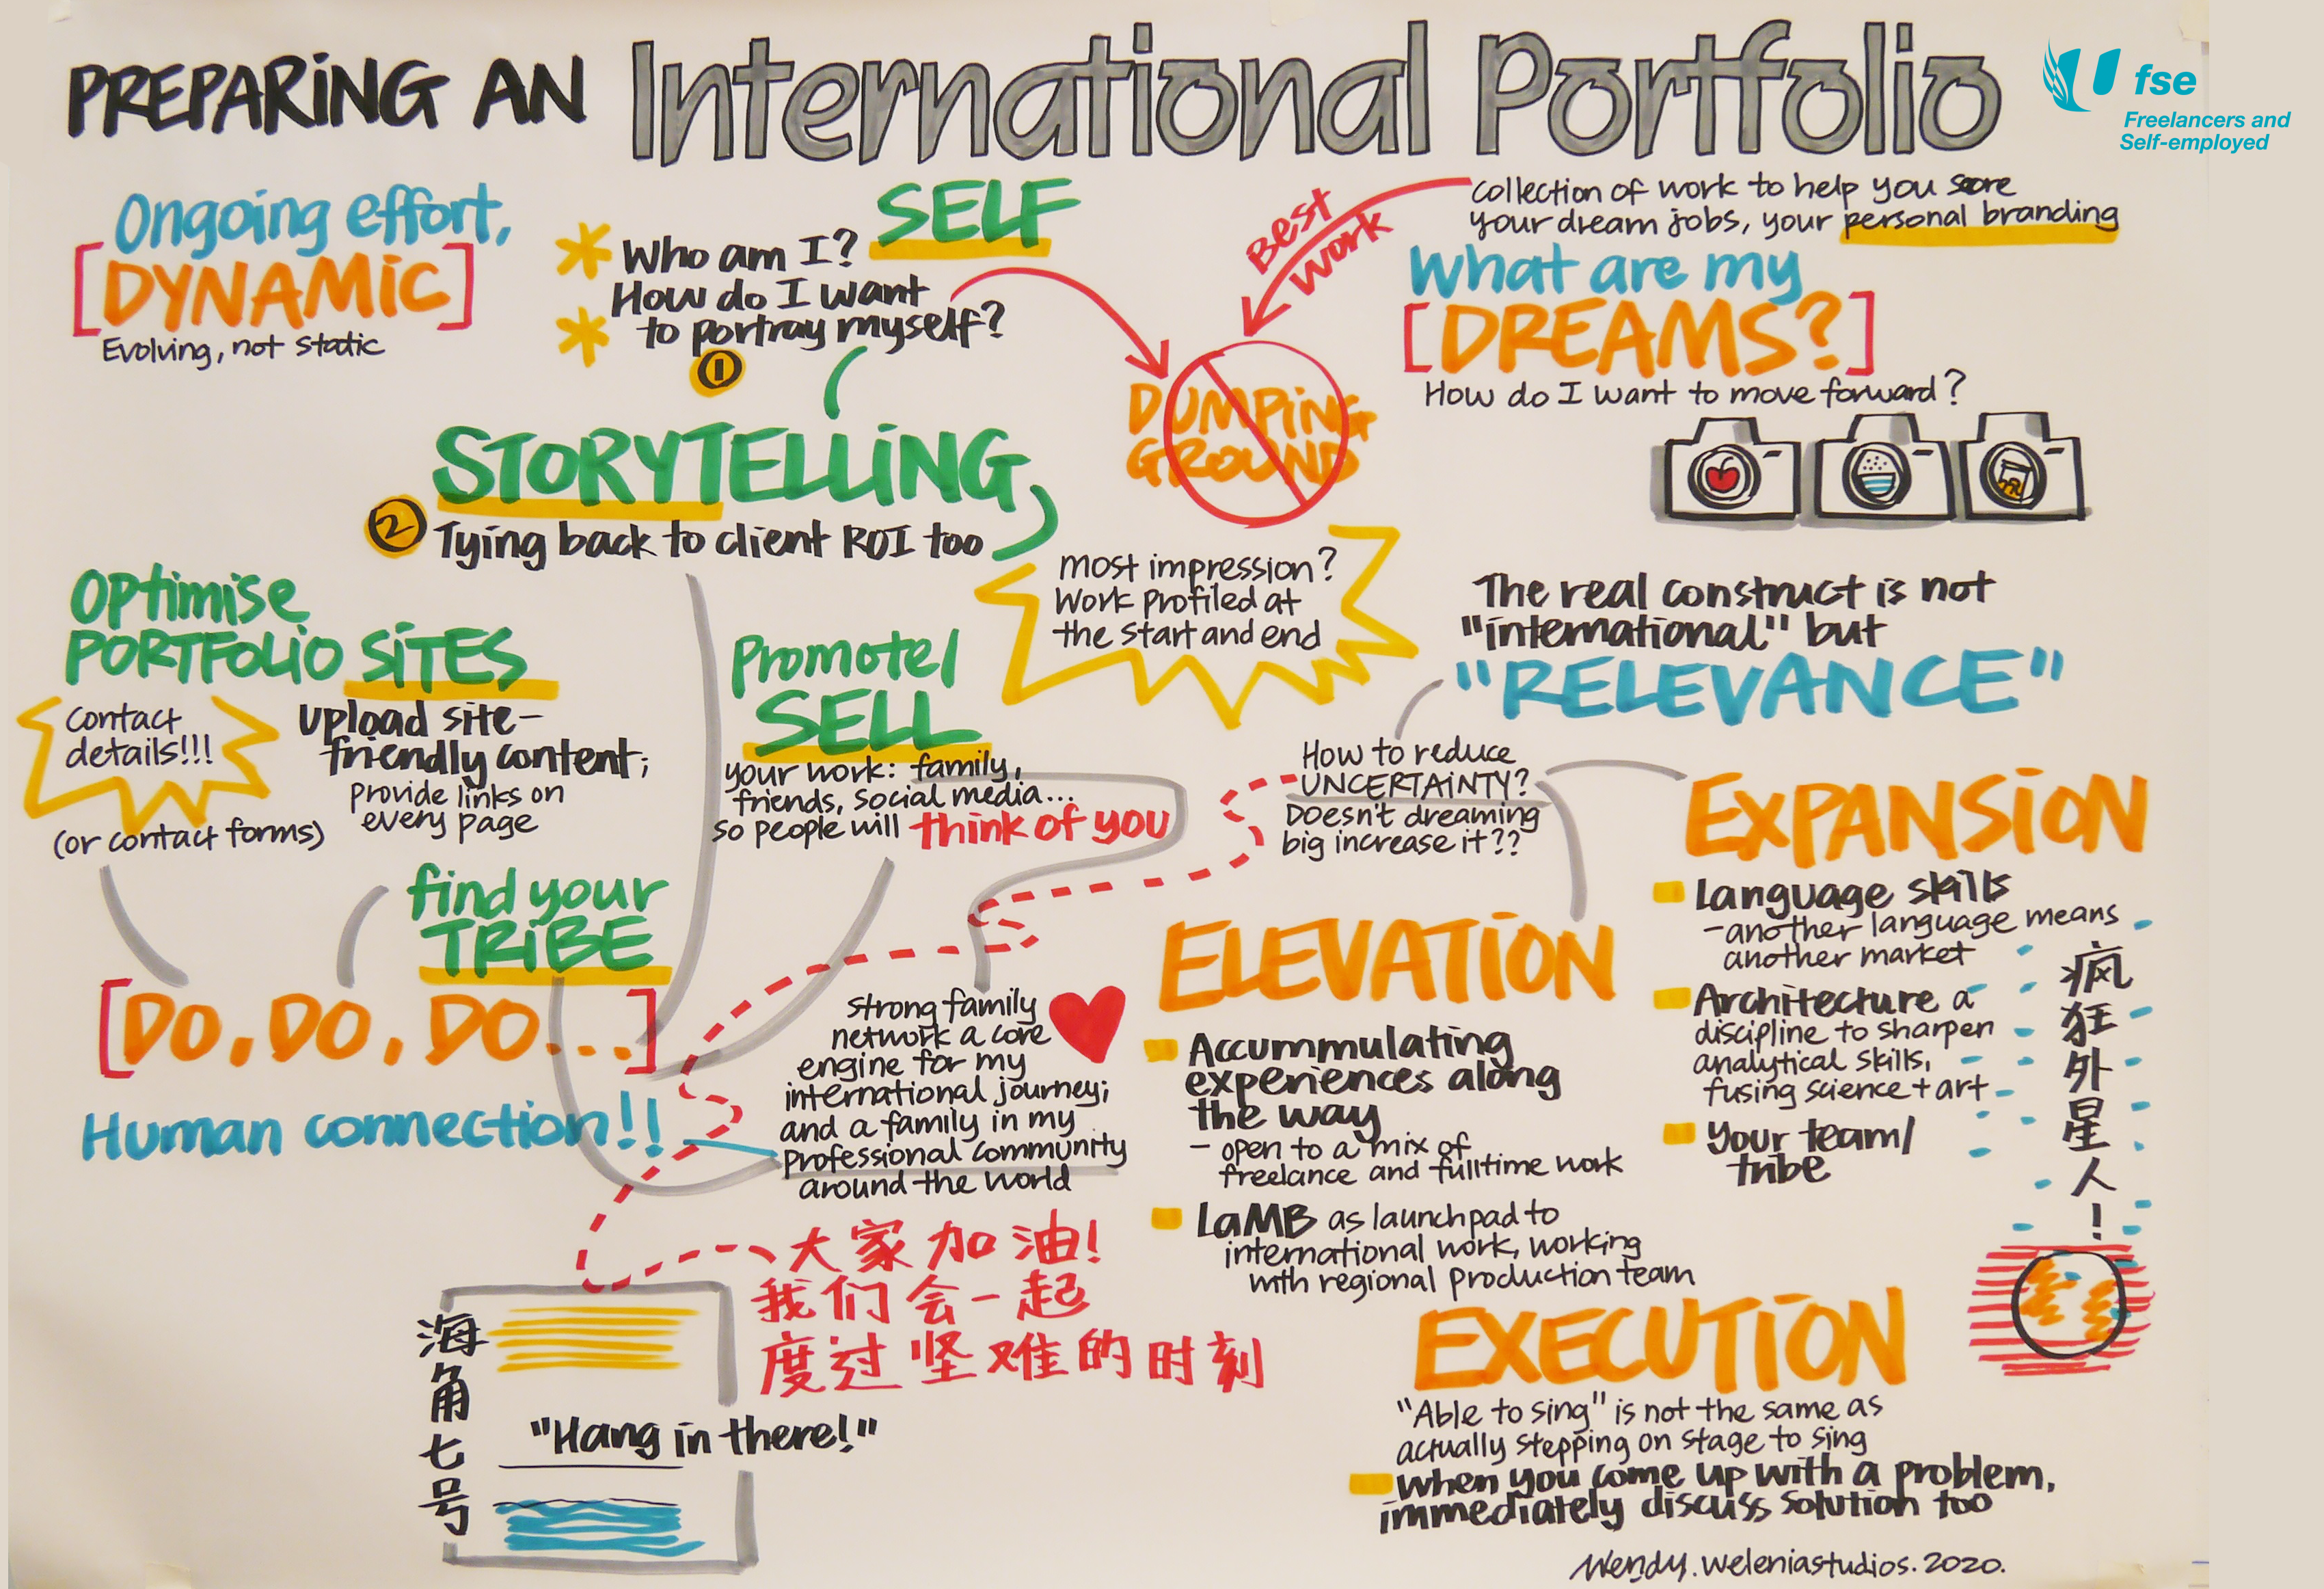 preparing-an-international-portfolio.png